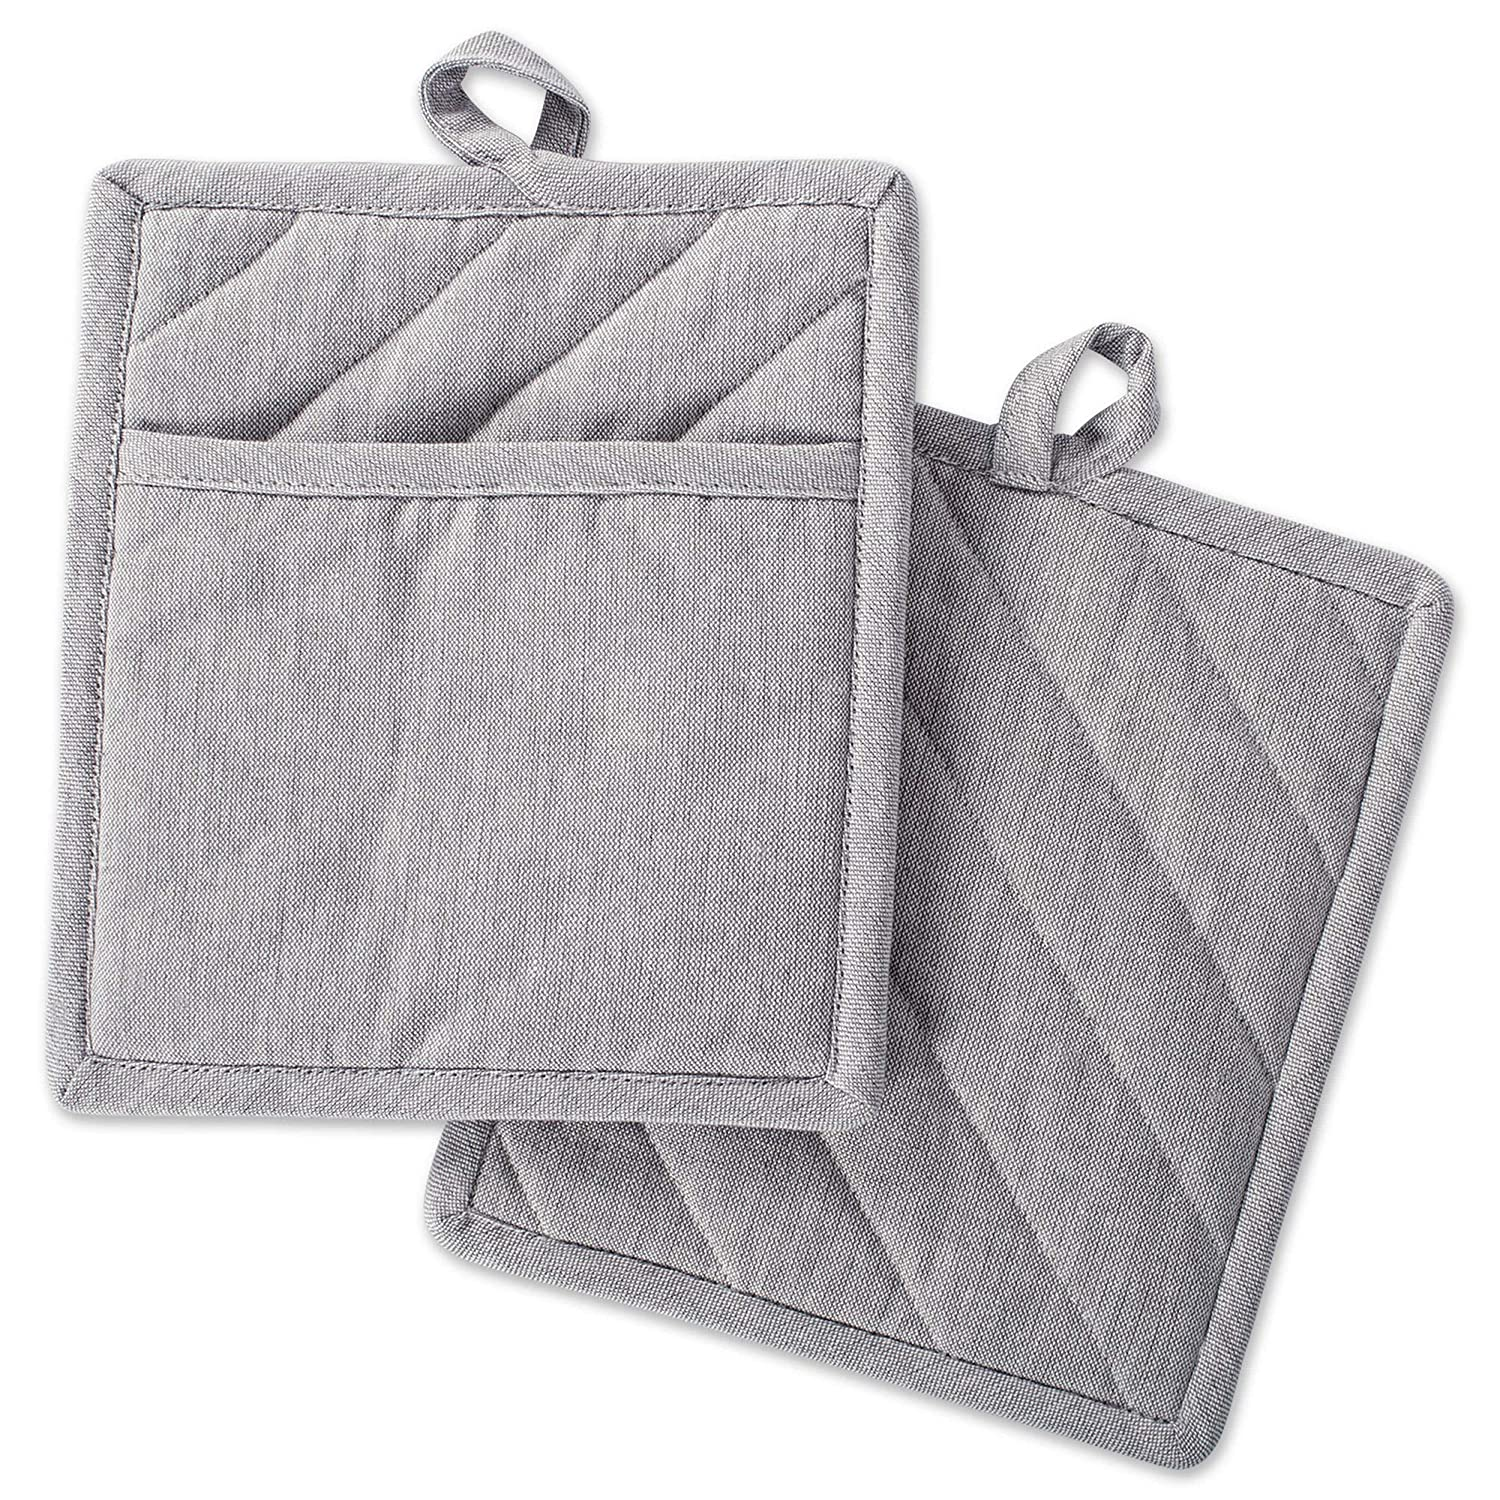 CC Home Furnishings Set of 2 Gray Chambray Solid Patterned Potholders 9""